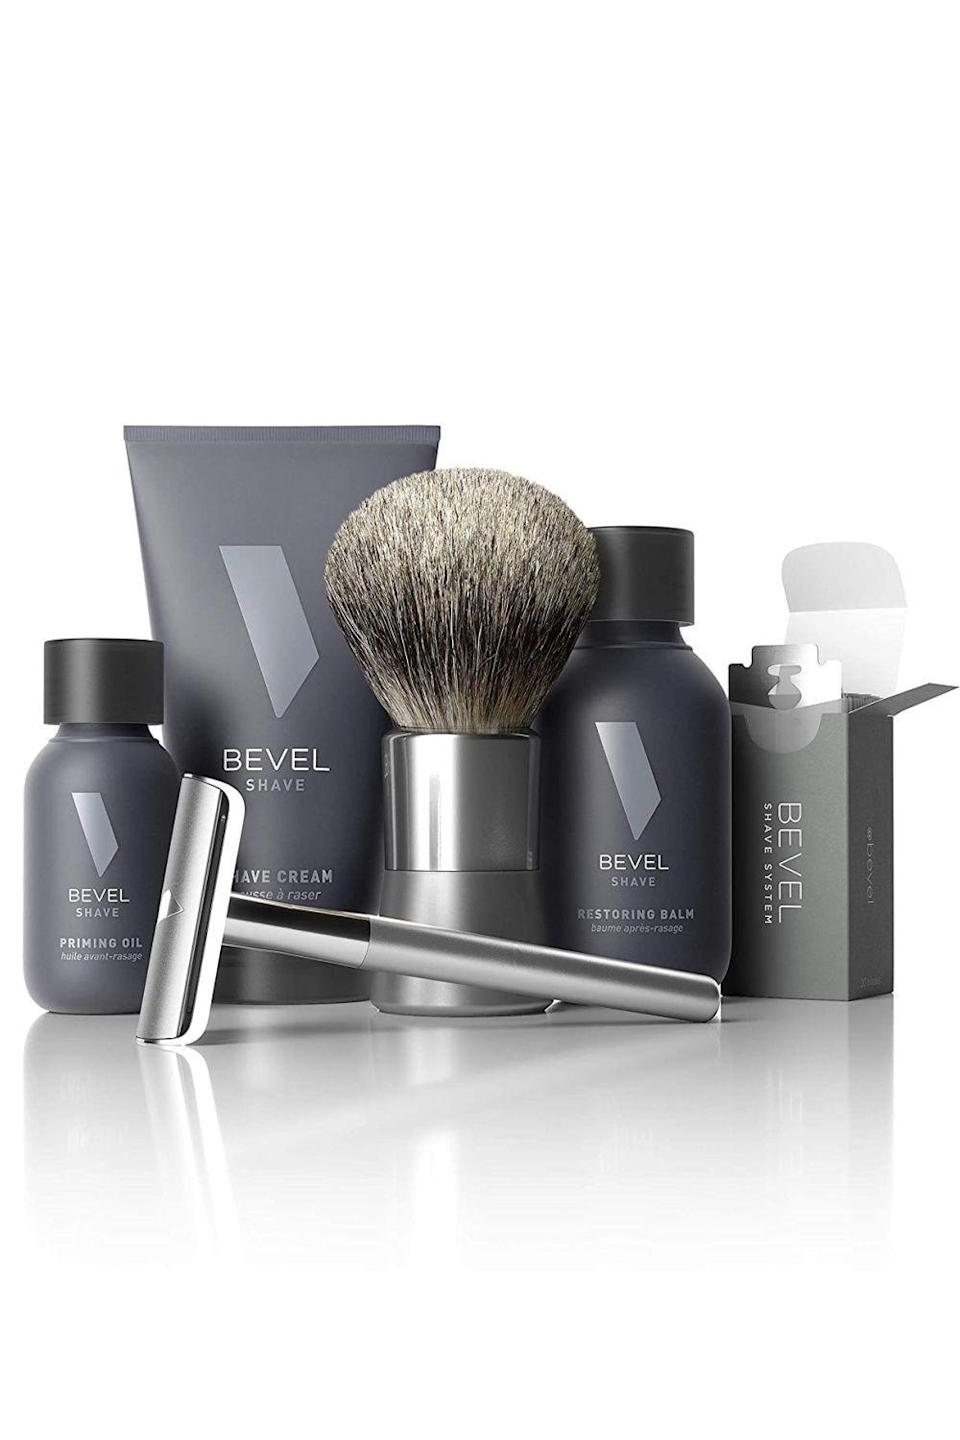 "<p><strong>Bevel</strong></p><p>amazon.com</p><p><strong>$89.99</strong></p><p><a href=""https://www.amazon.com/dp/B00IT8K564?tag=syn-yahoo-20&ascsubtag=%5Bartid%7C10049.g.34363935%5Bsrc%7Cyahoo-us"" rel=""nofollow noopener"" target=""_blank"" data-ylk=""slk:Shop Now"" class=""link rapid-noclick-resp"">Shop Now</a></p>"